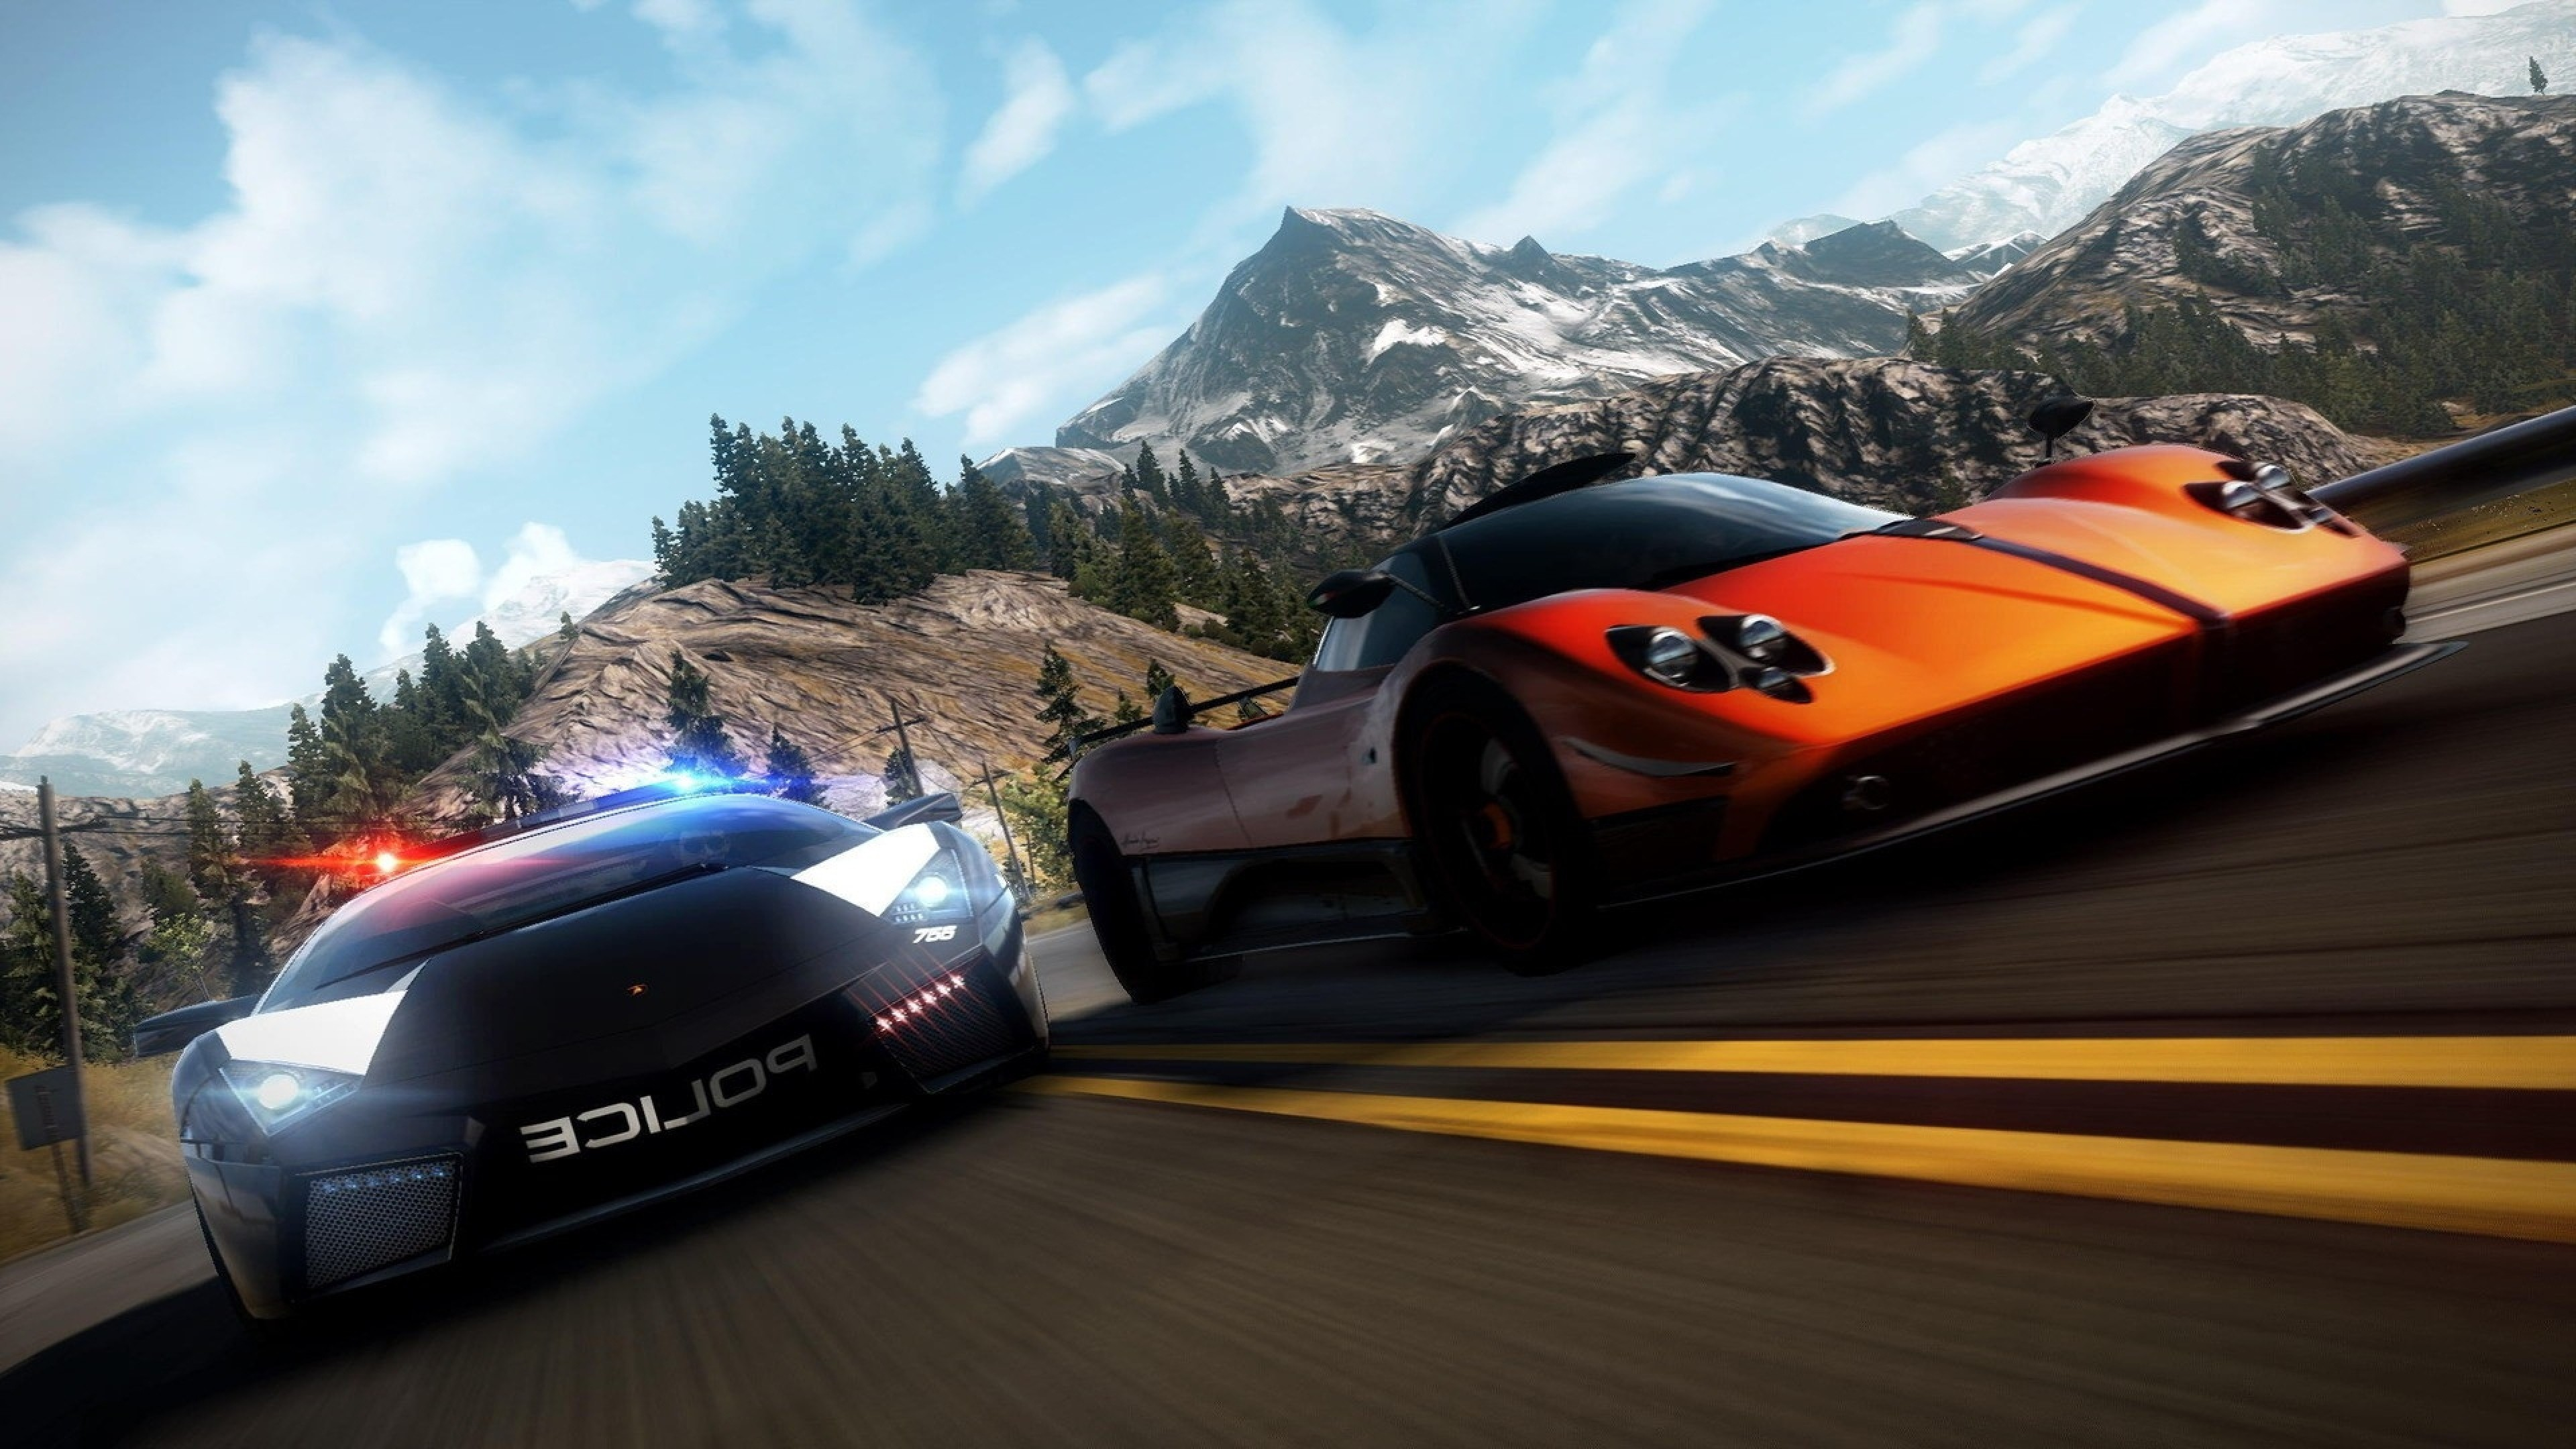 Preview wallpaper nfs, need for speed, police, road, mountain, sky 3840×2160